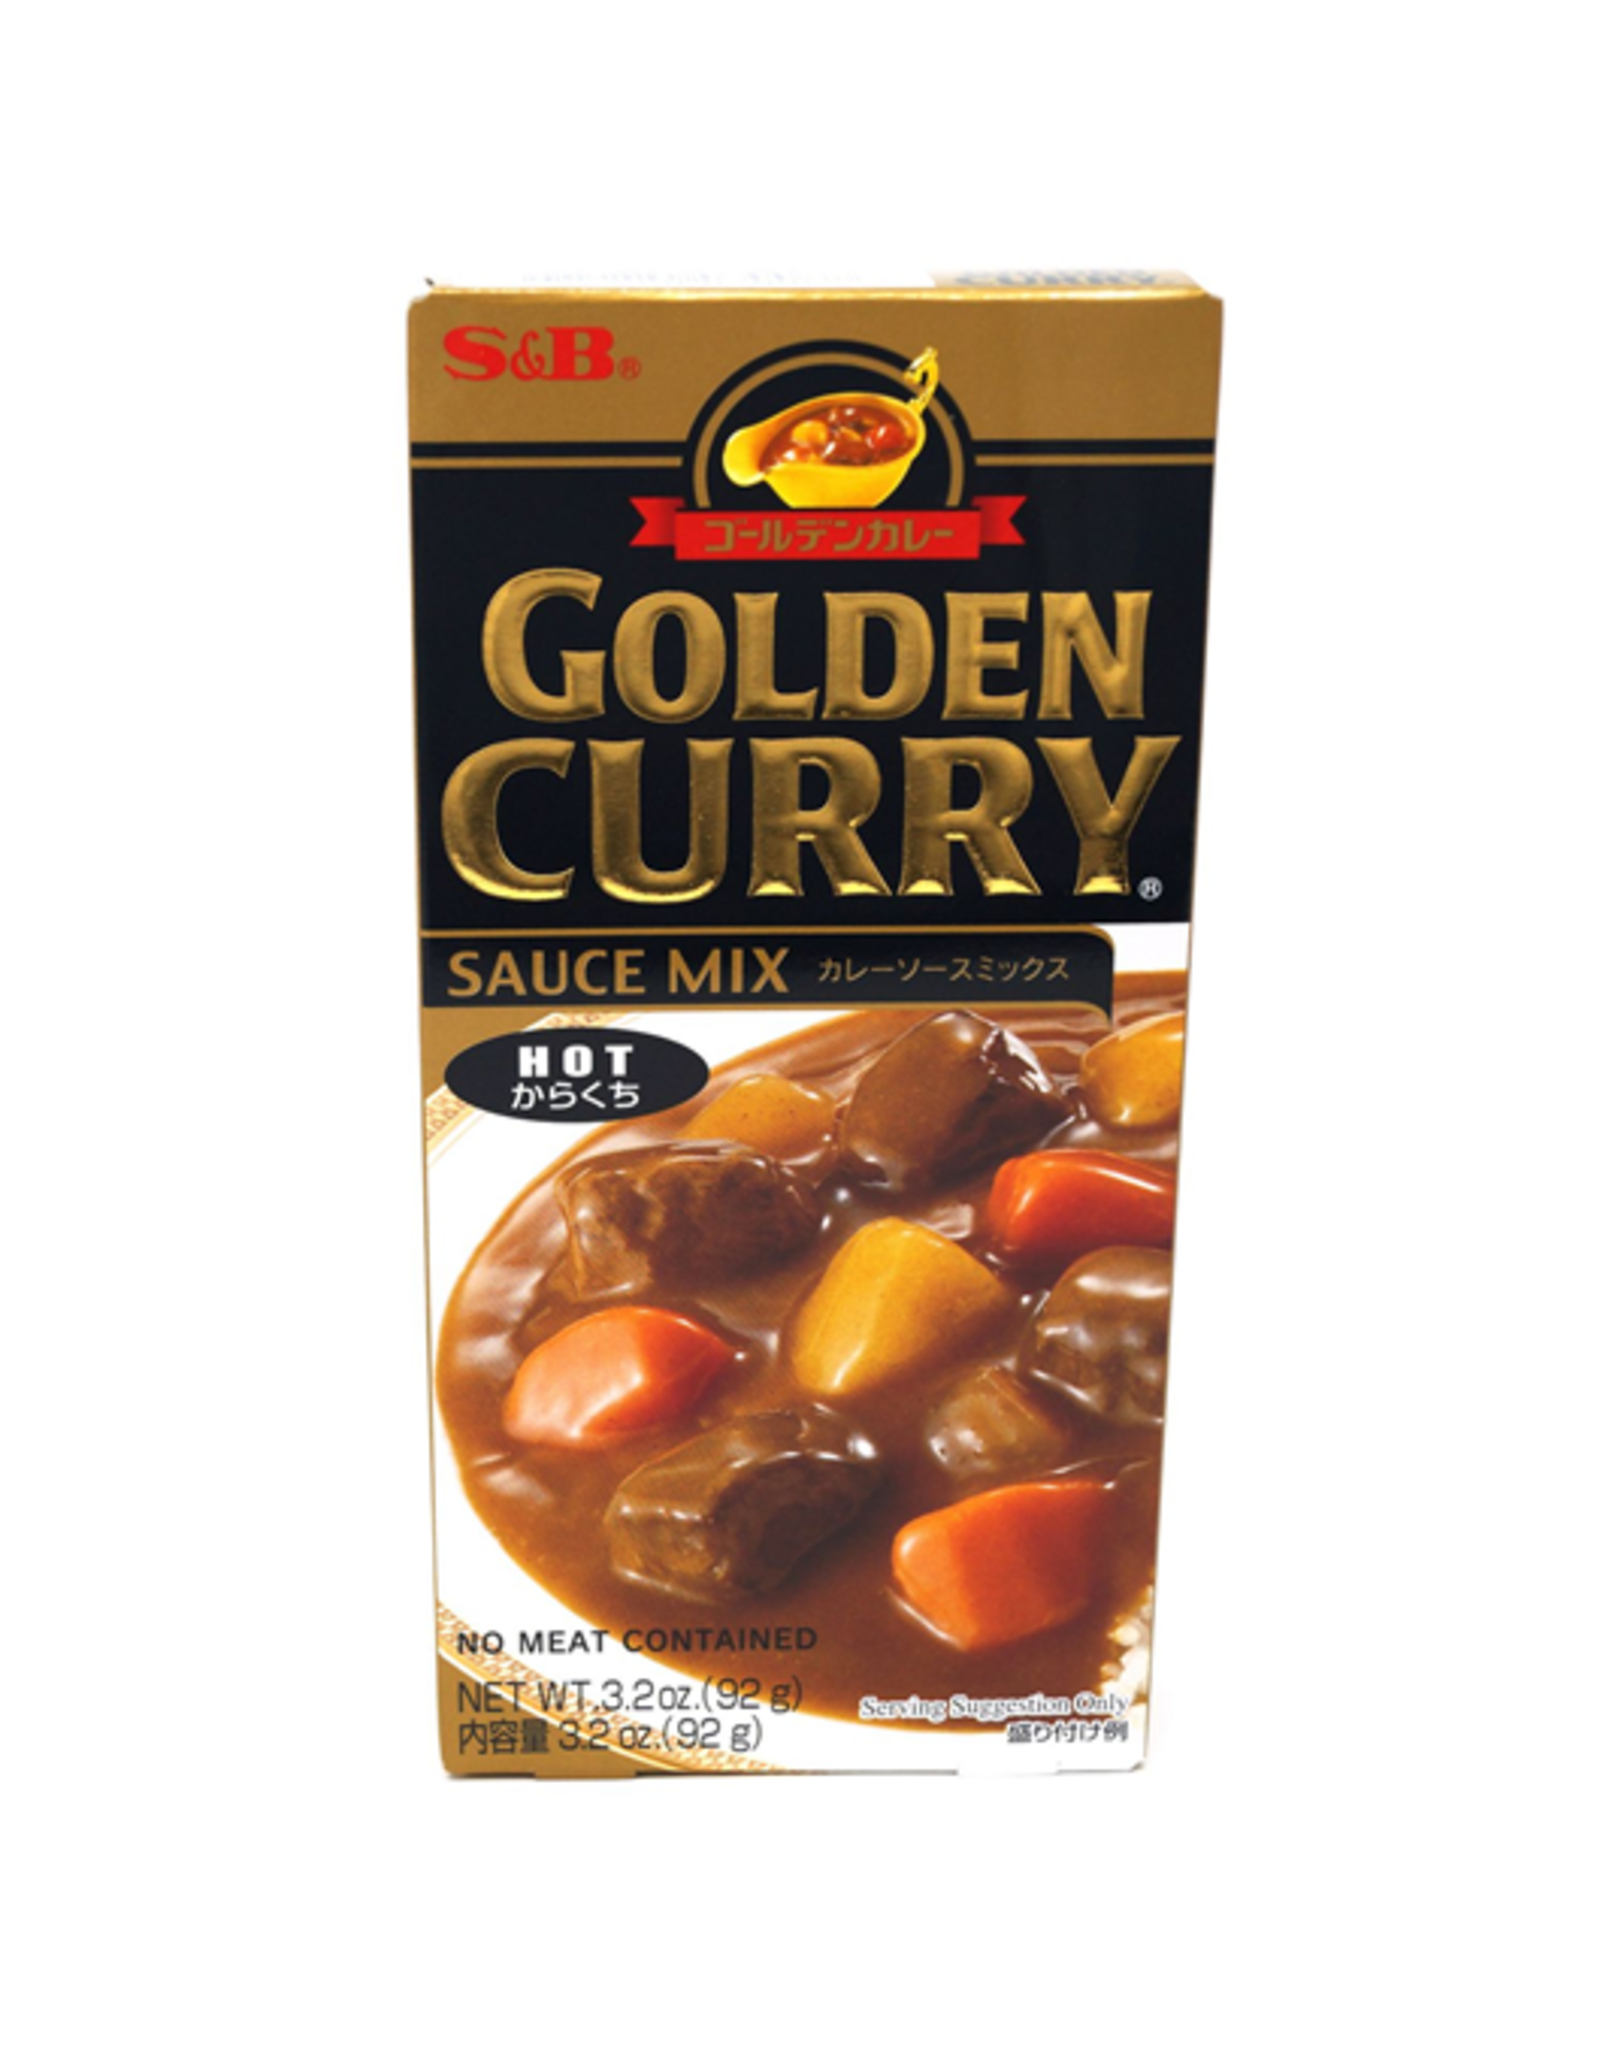 S&B Golden Curry Sauce Japanese Curry Mix Hot